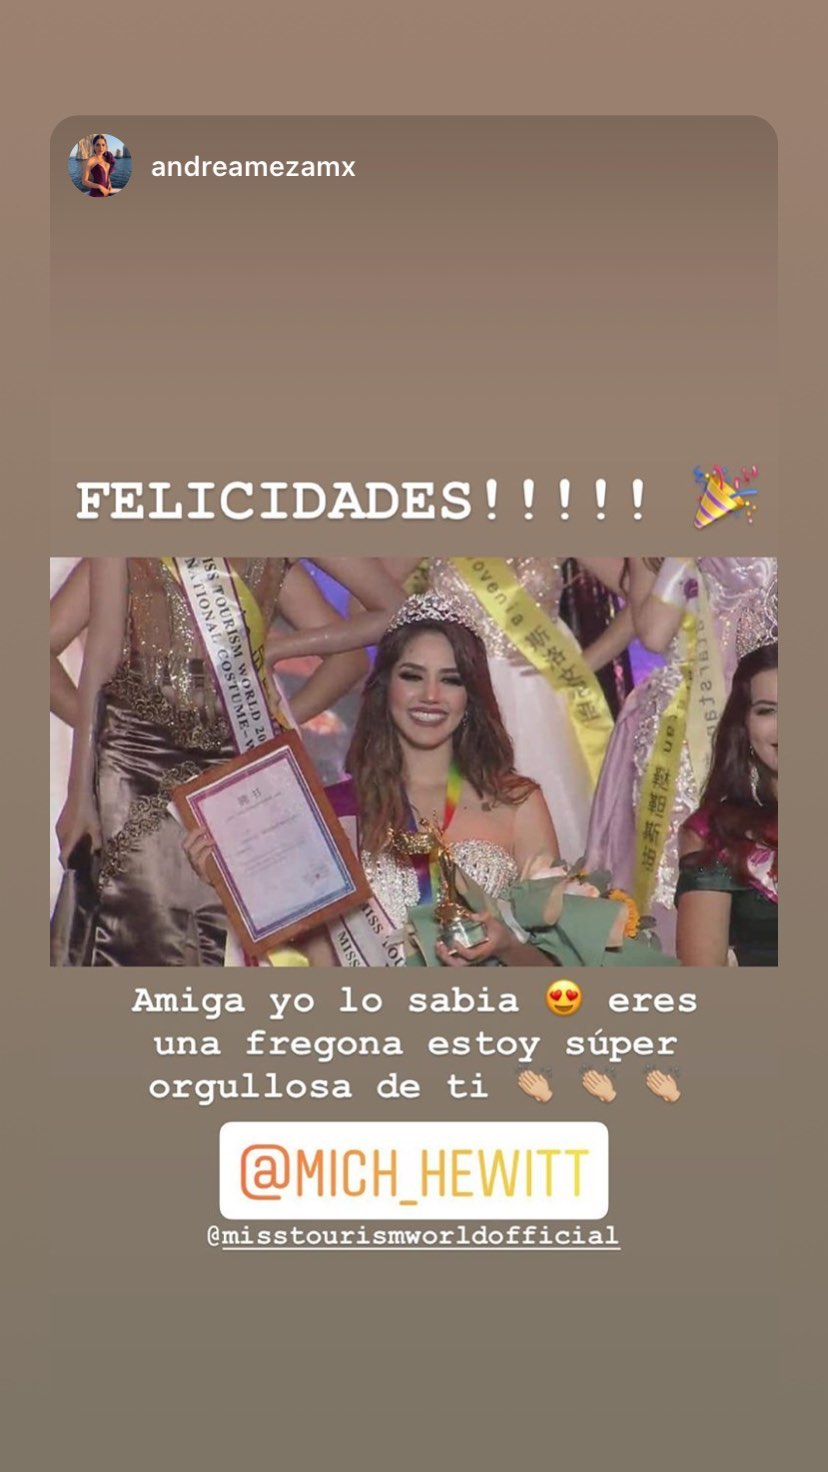 mich hewitt, miss tourism world 2019. - Página 4 72654210